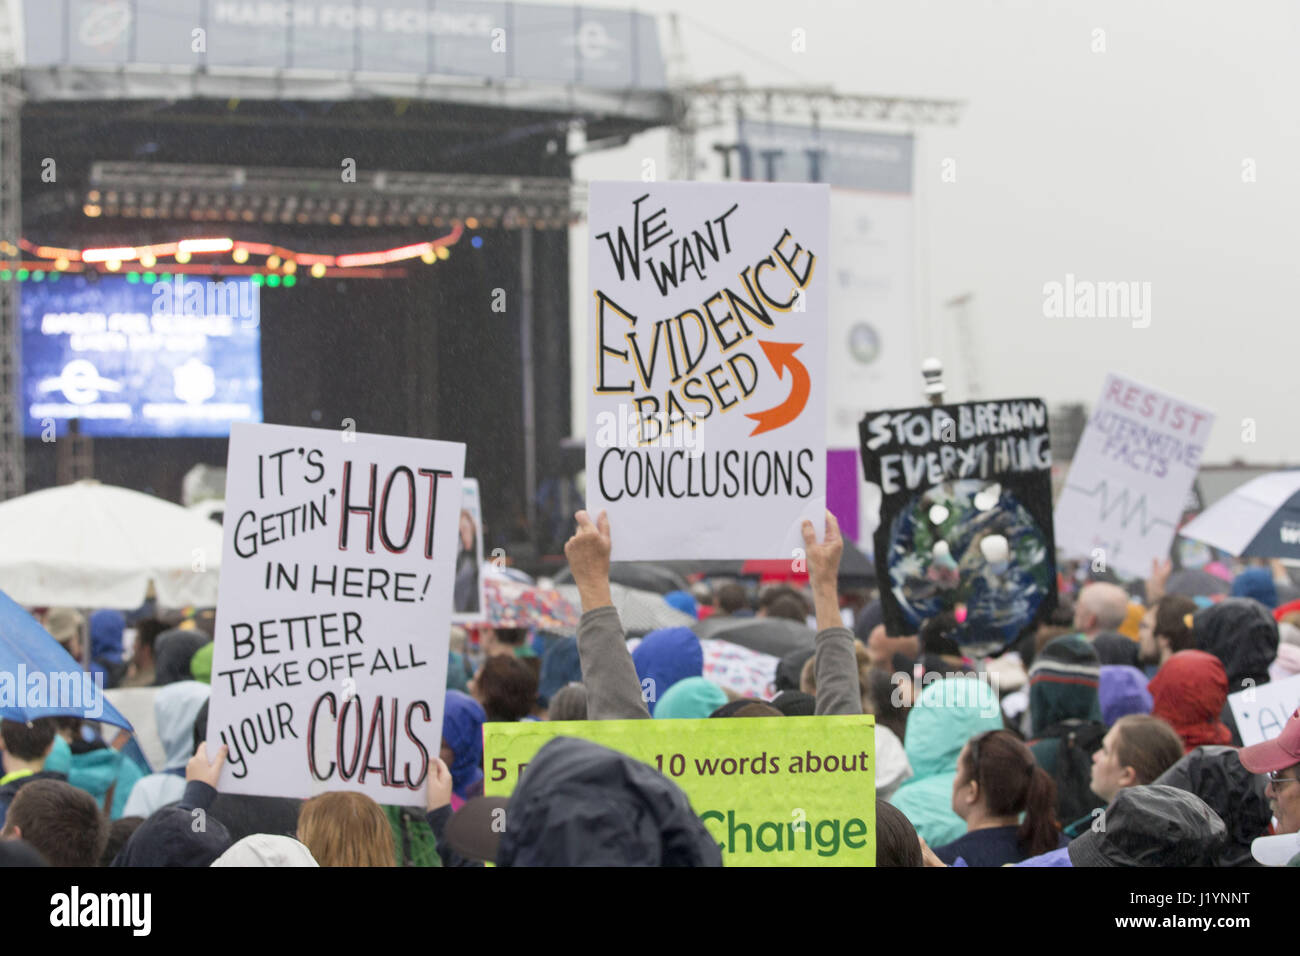 Washington, District Of Columbia, USA. 22nd Apr, 2017. Protest signs at the March For Science in Washington, DC Stock Photo